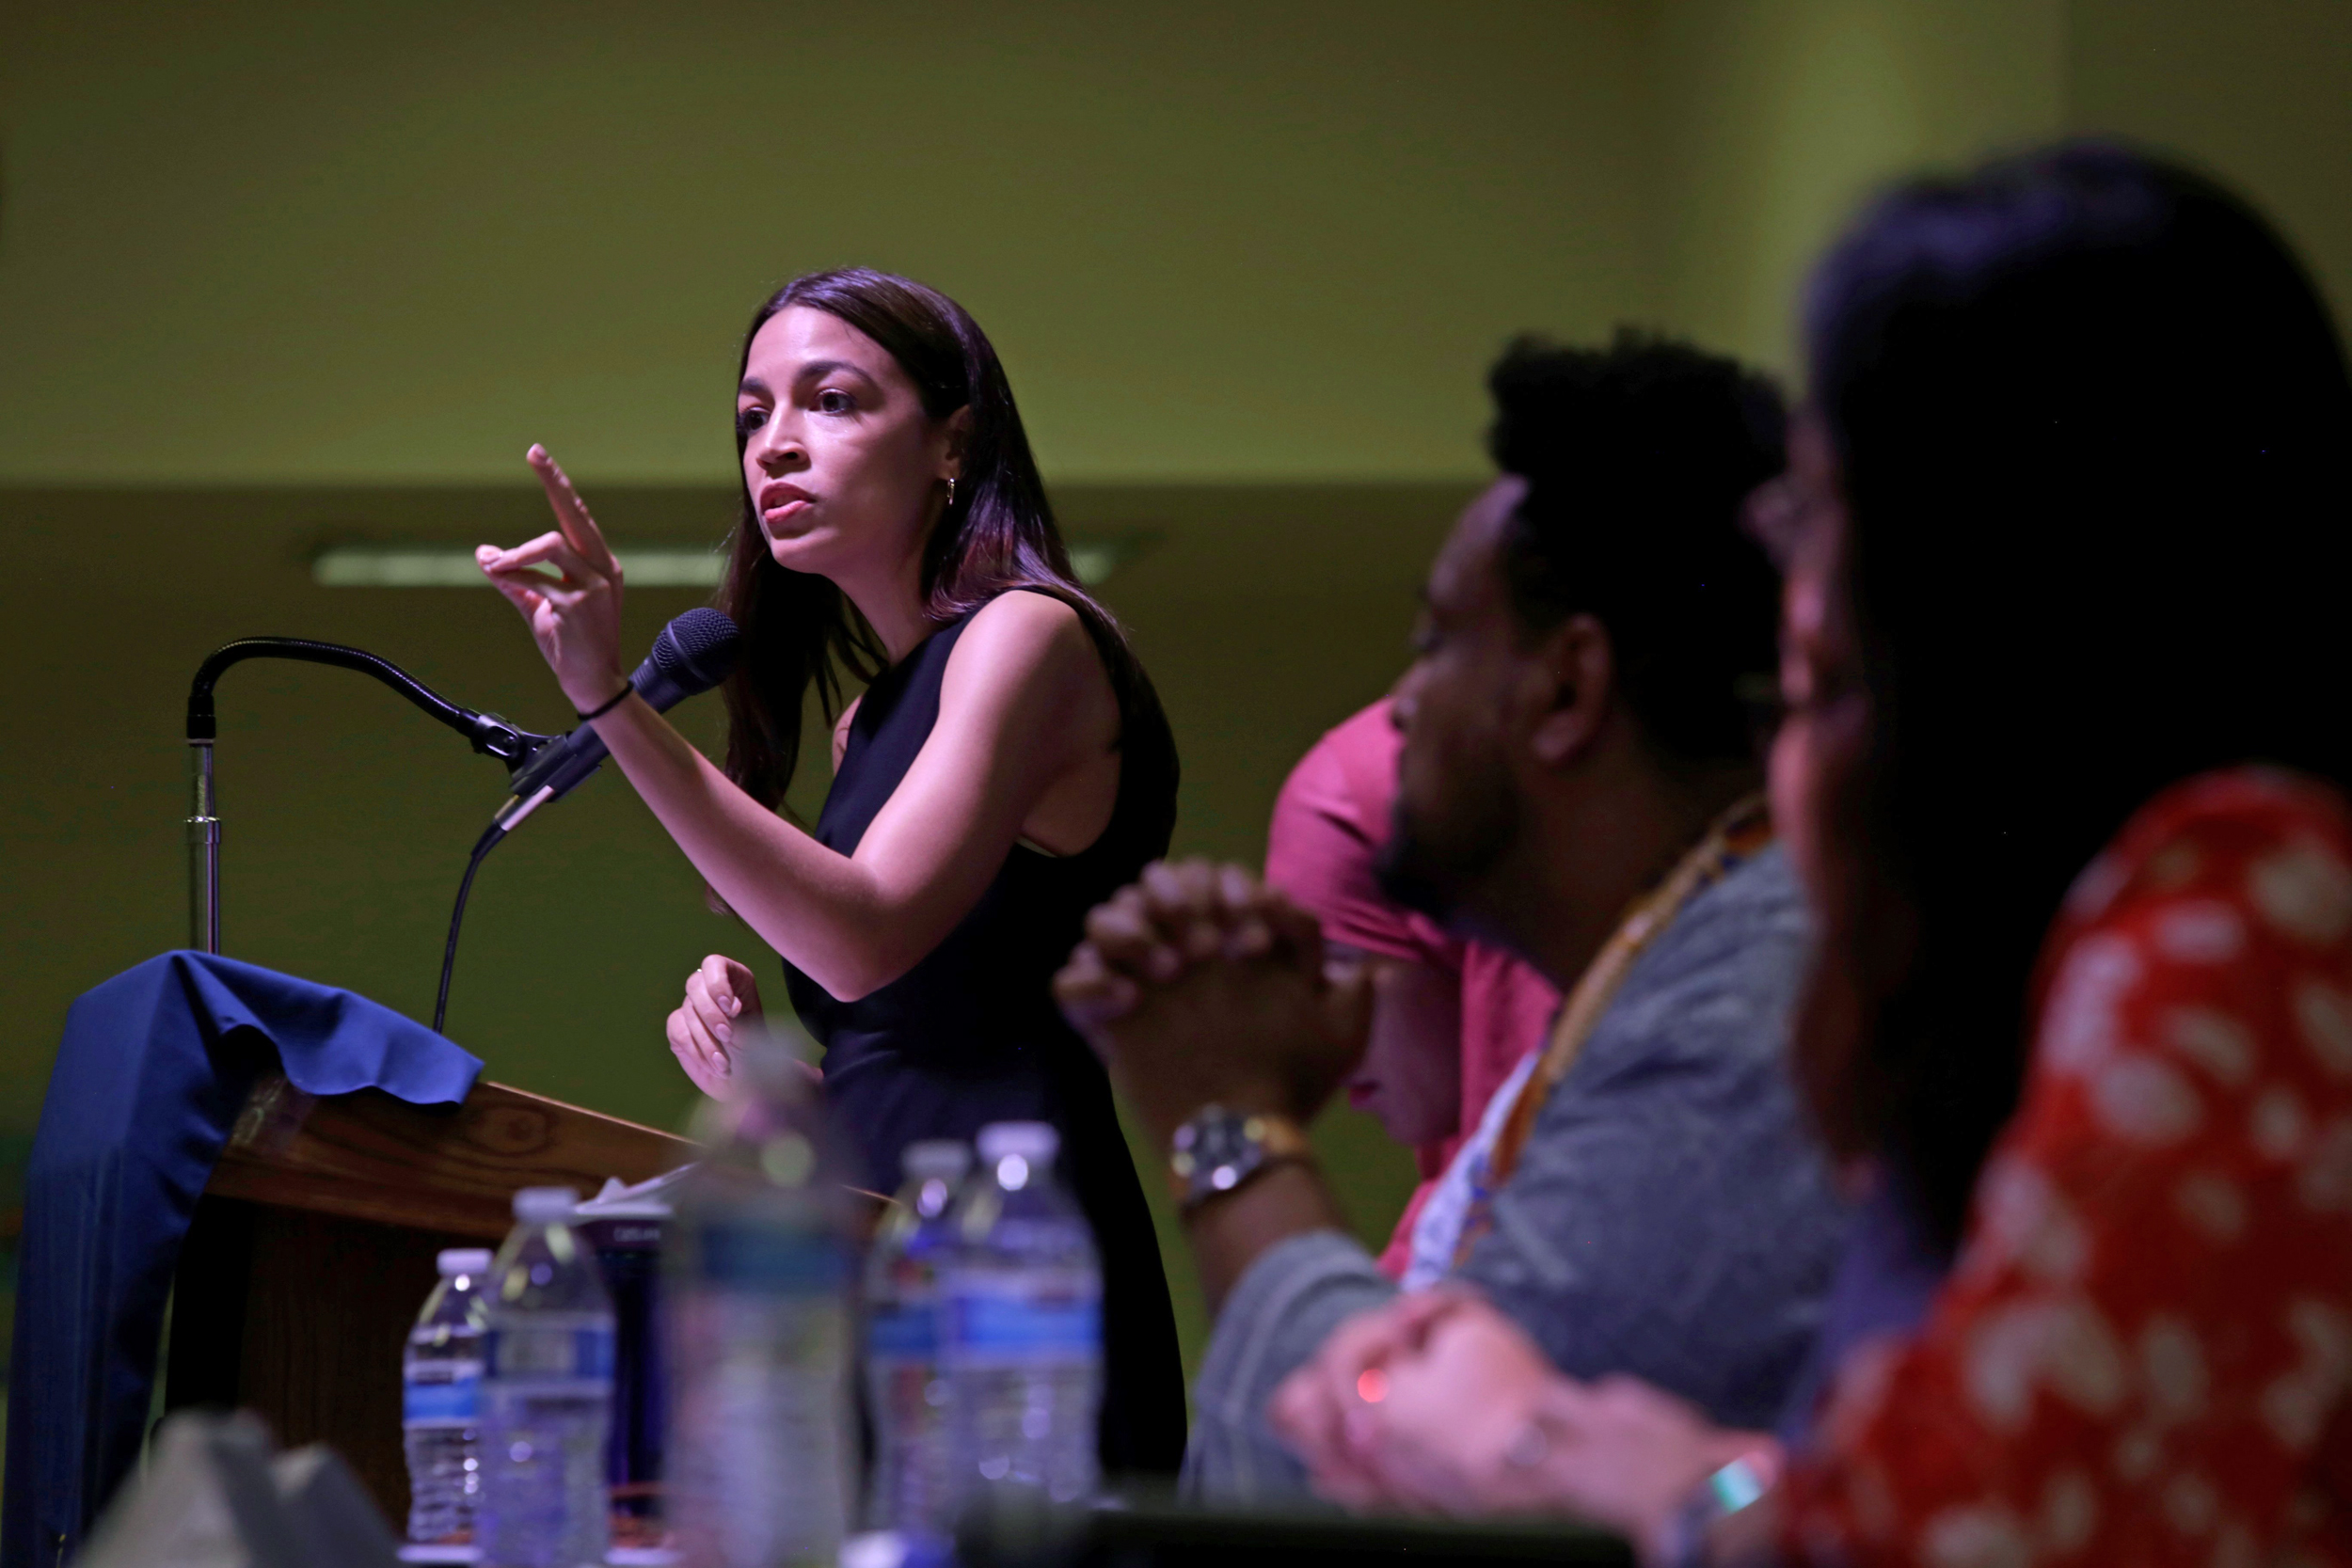 Louisiana police officer fired after suggesting AOC should